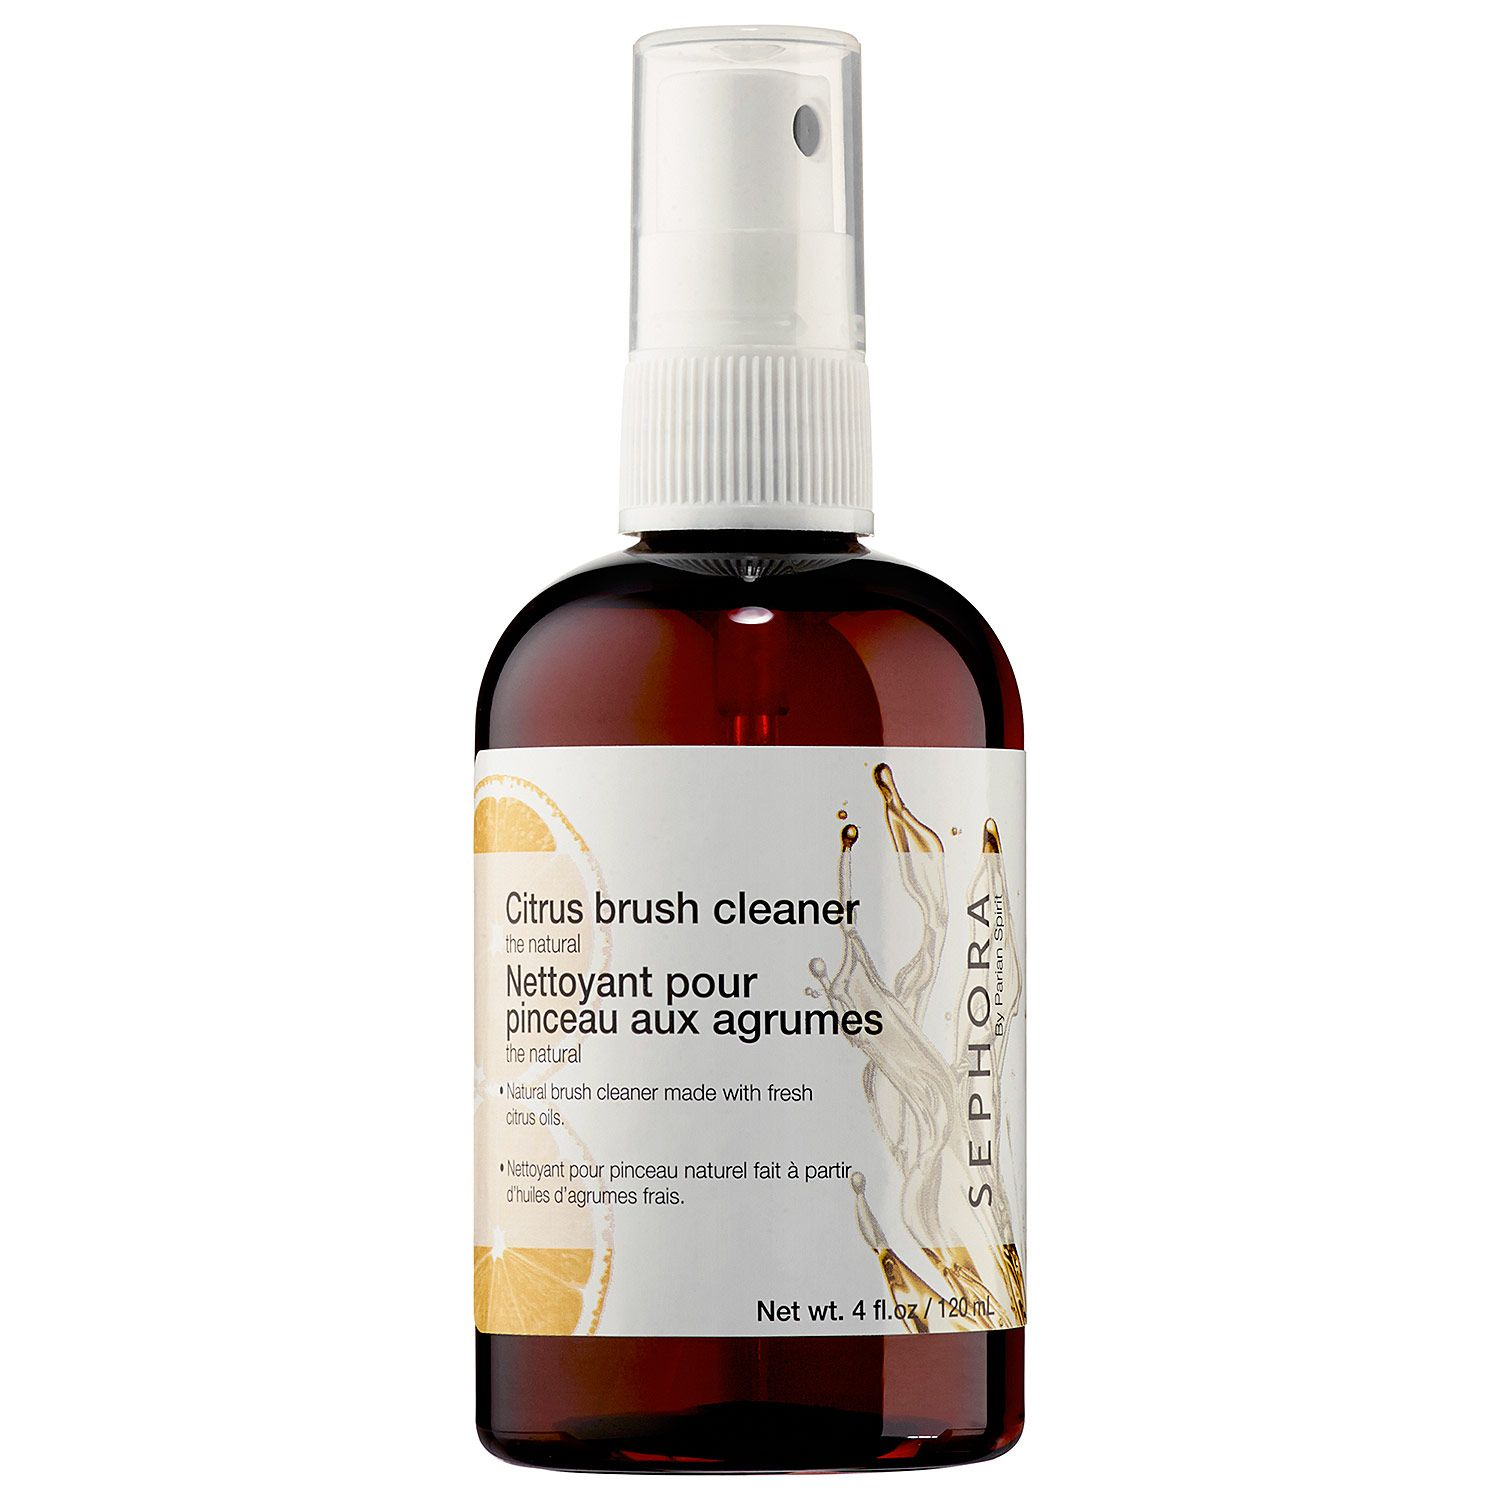 The Natural Citrus Brush Cleaner SEPHORA COLLECTION